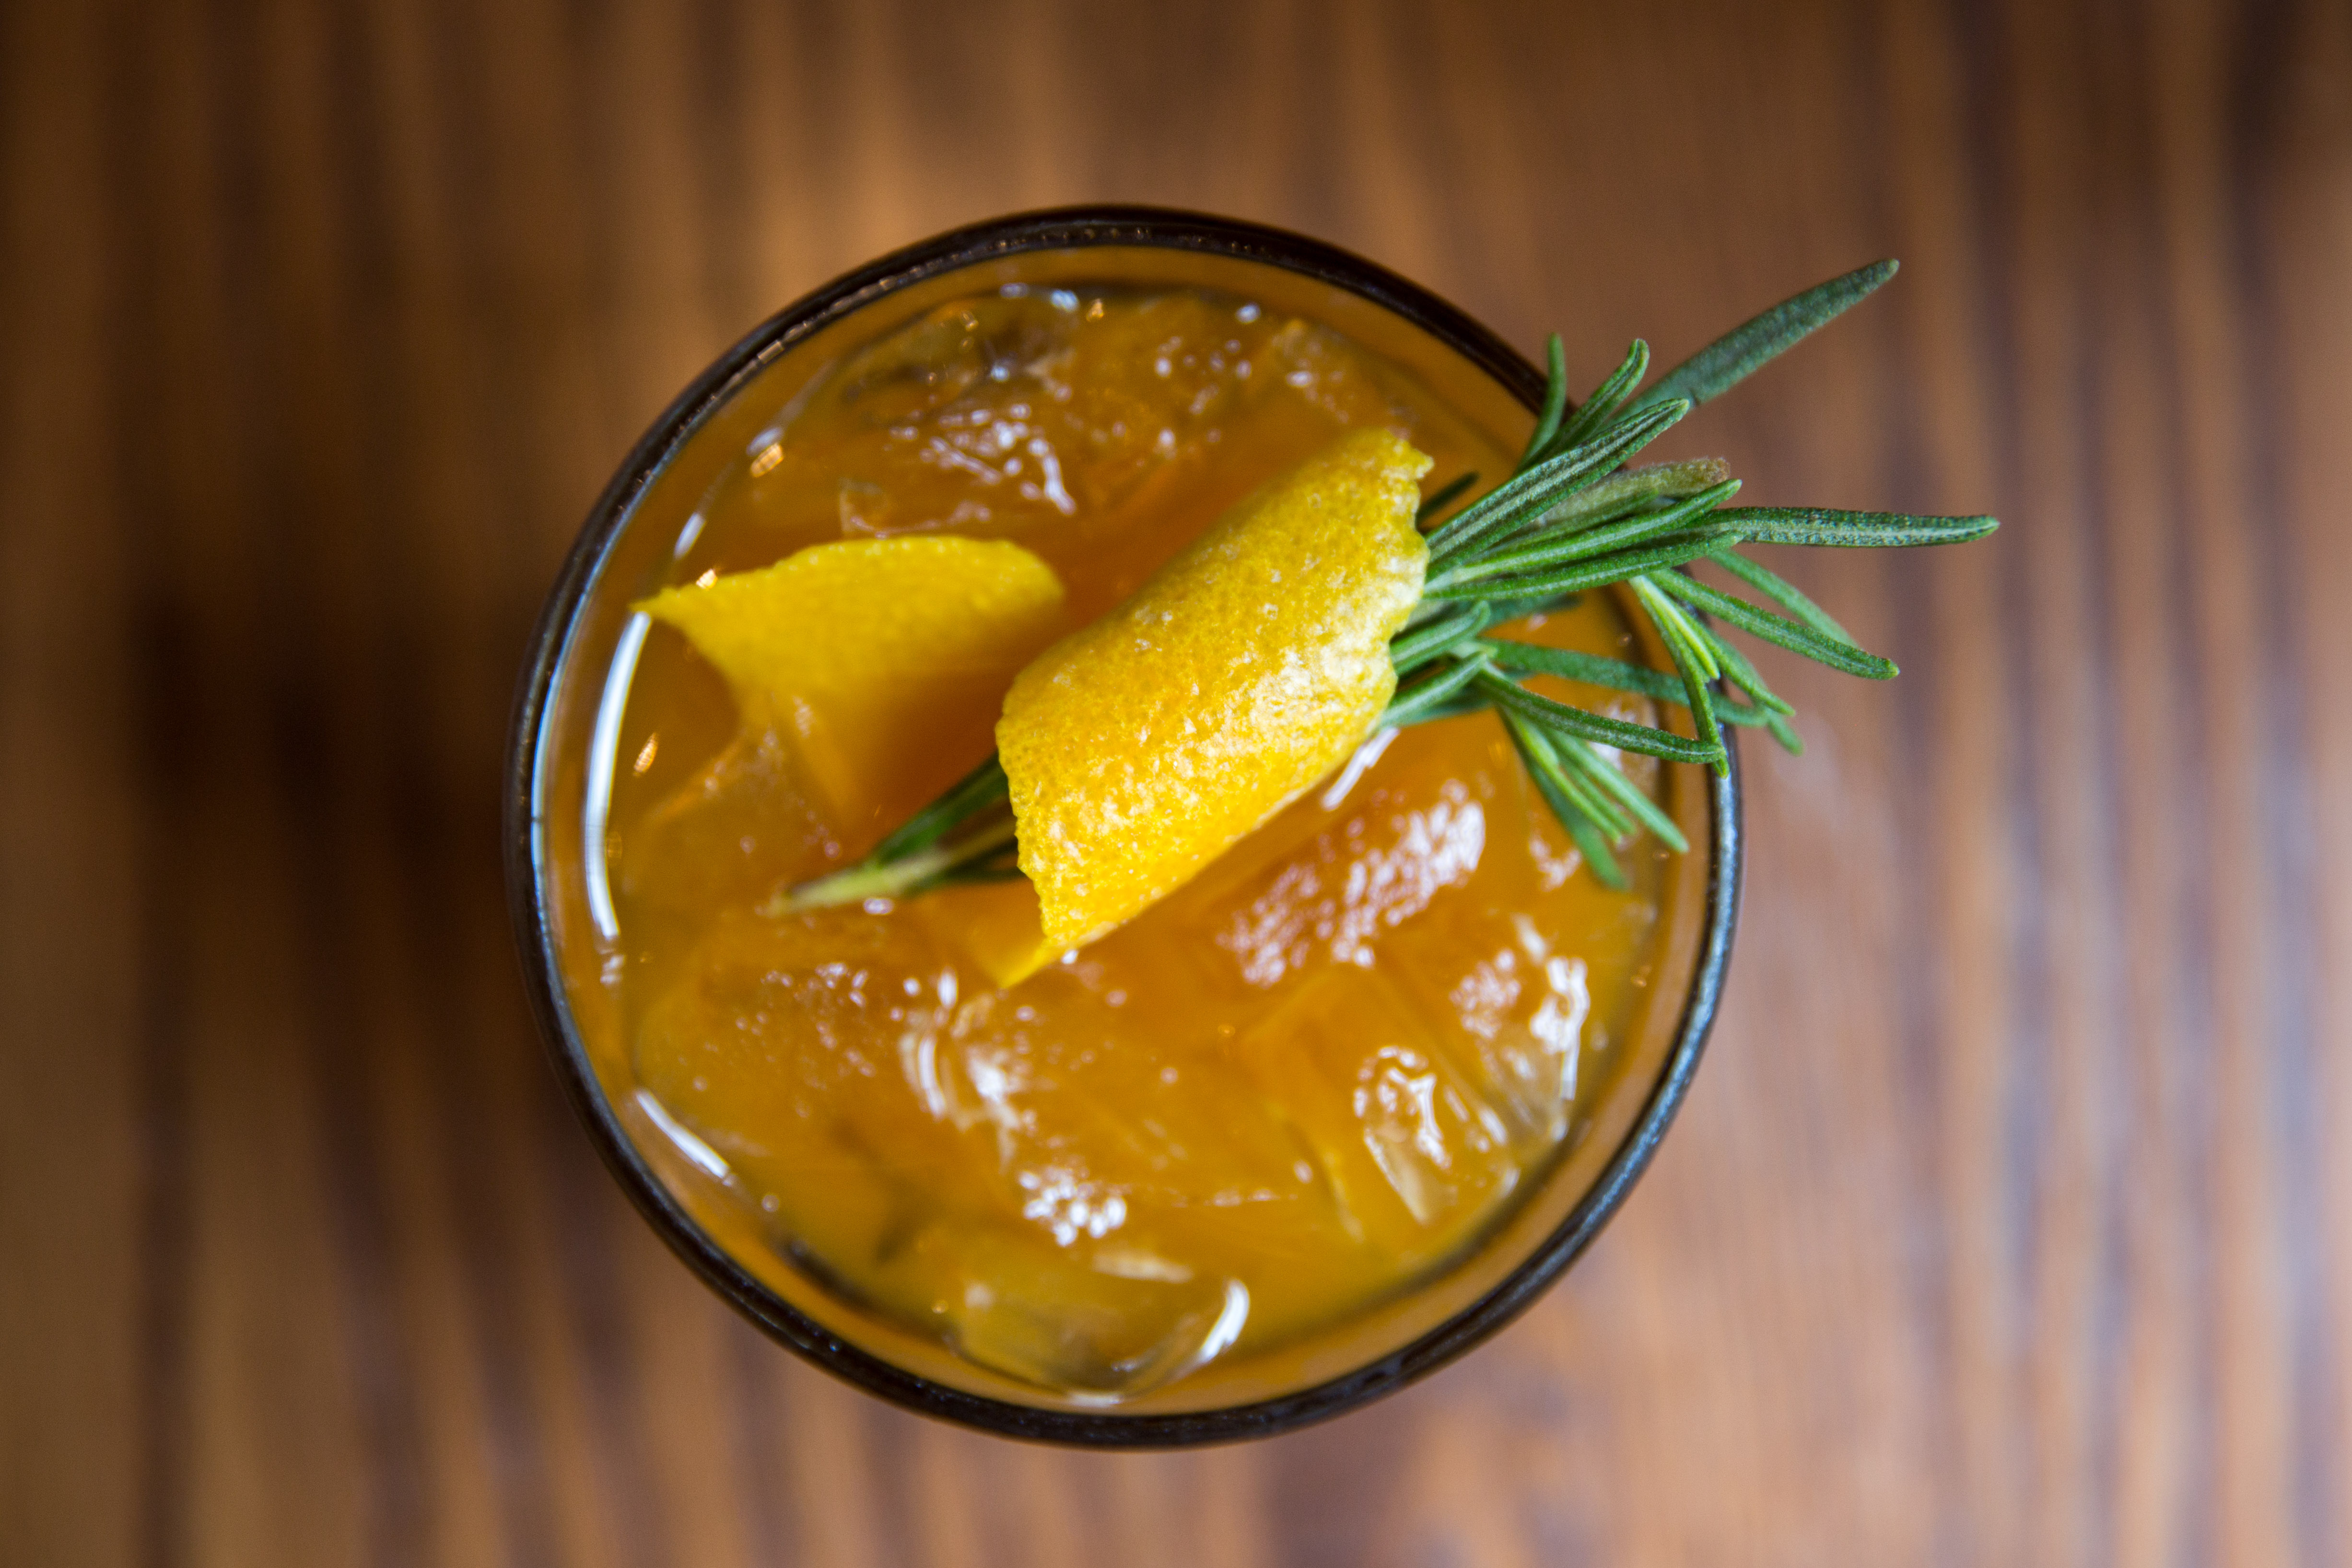 <p>Pumpkin Old Fashioned ($15), Old Forrester Bourbon, pumpkin puree, maple syrup, garnished with orange peel and rosemary.{&nbsp;}You can find these amazing pumpkin items at Tulio until October 31! (Image: Adela Lee).</p>